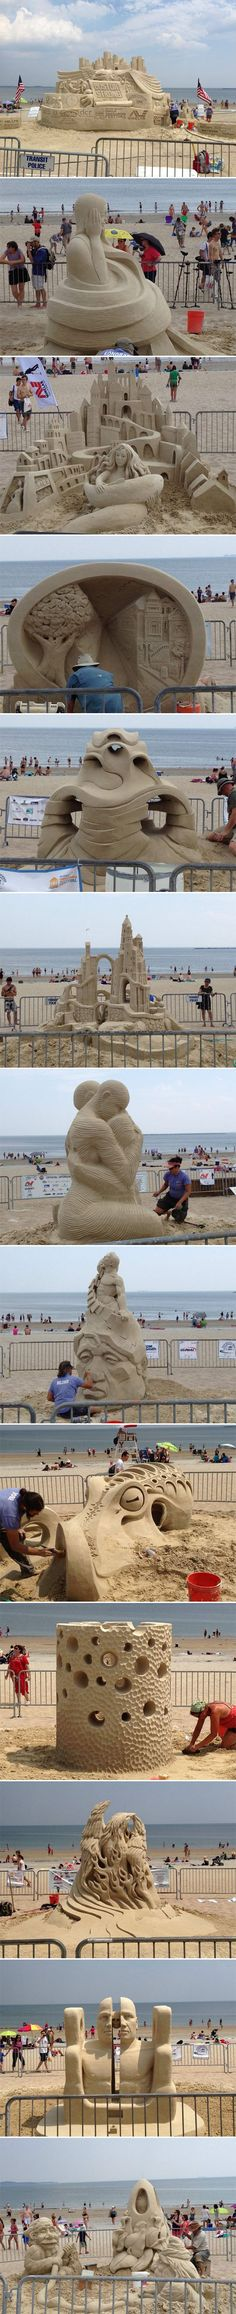 Revere Beach Sand Sculpting Festival, the octopus was the winner…